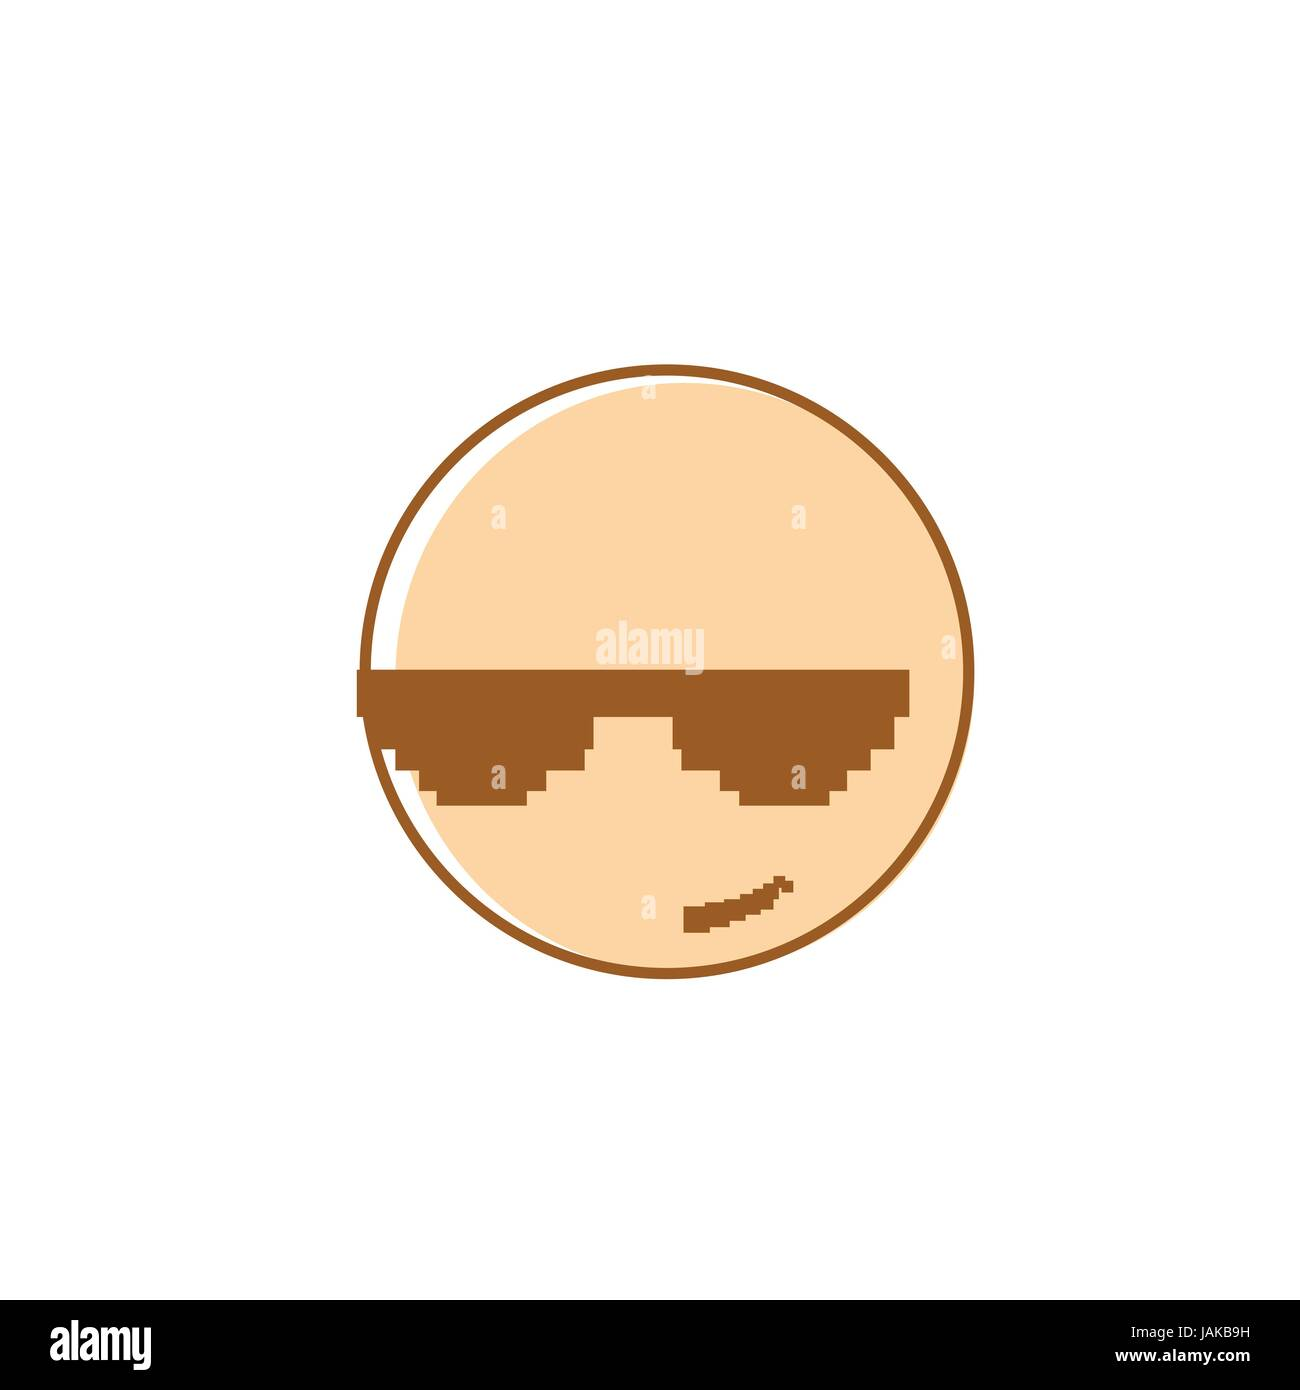 hight resolution of smiling cartoon face wear sunglasses positive people emotion icon